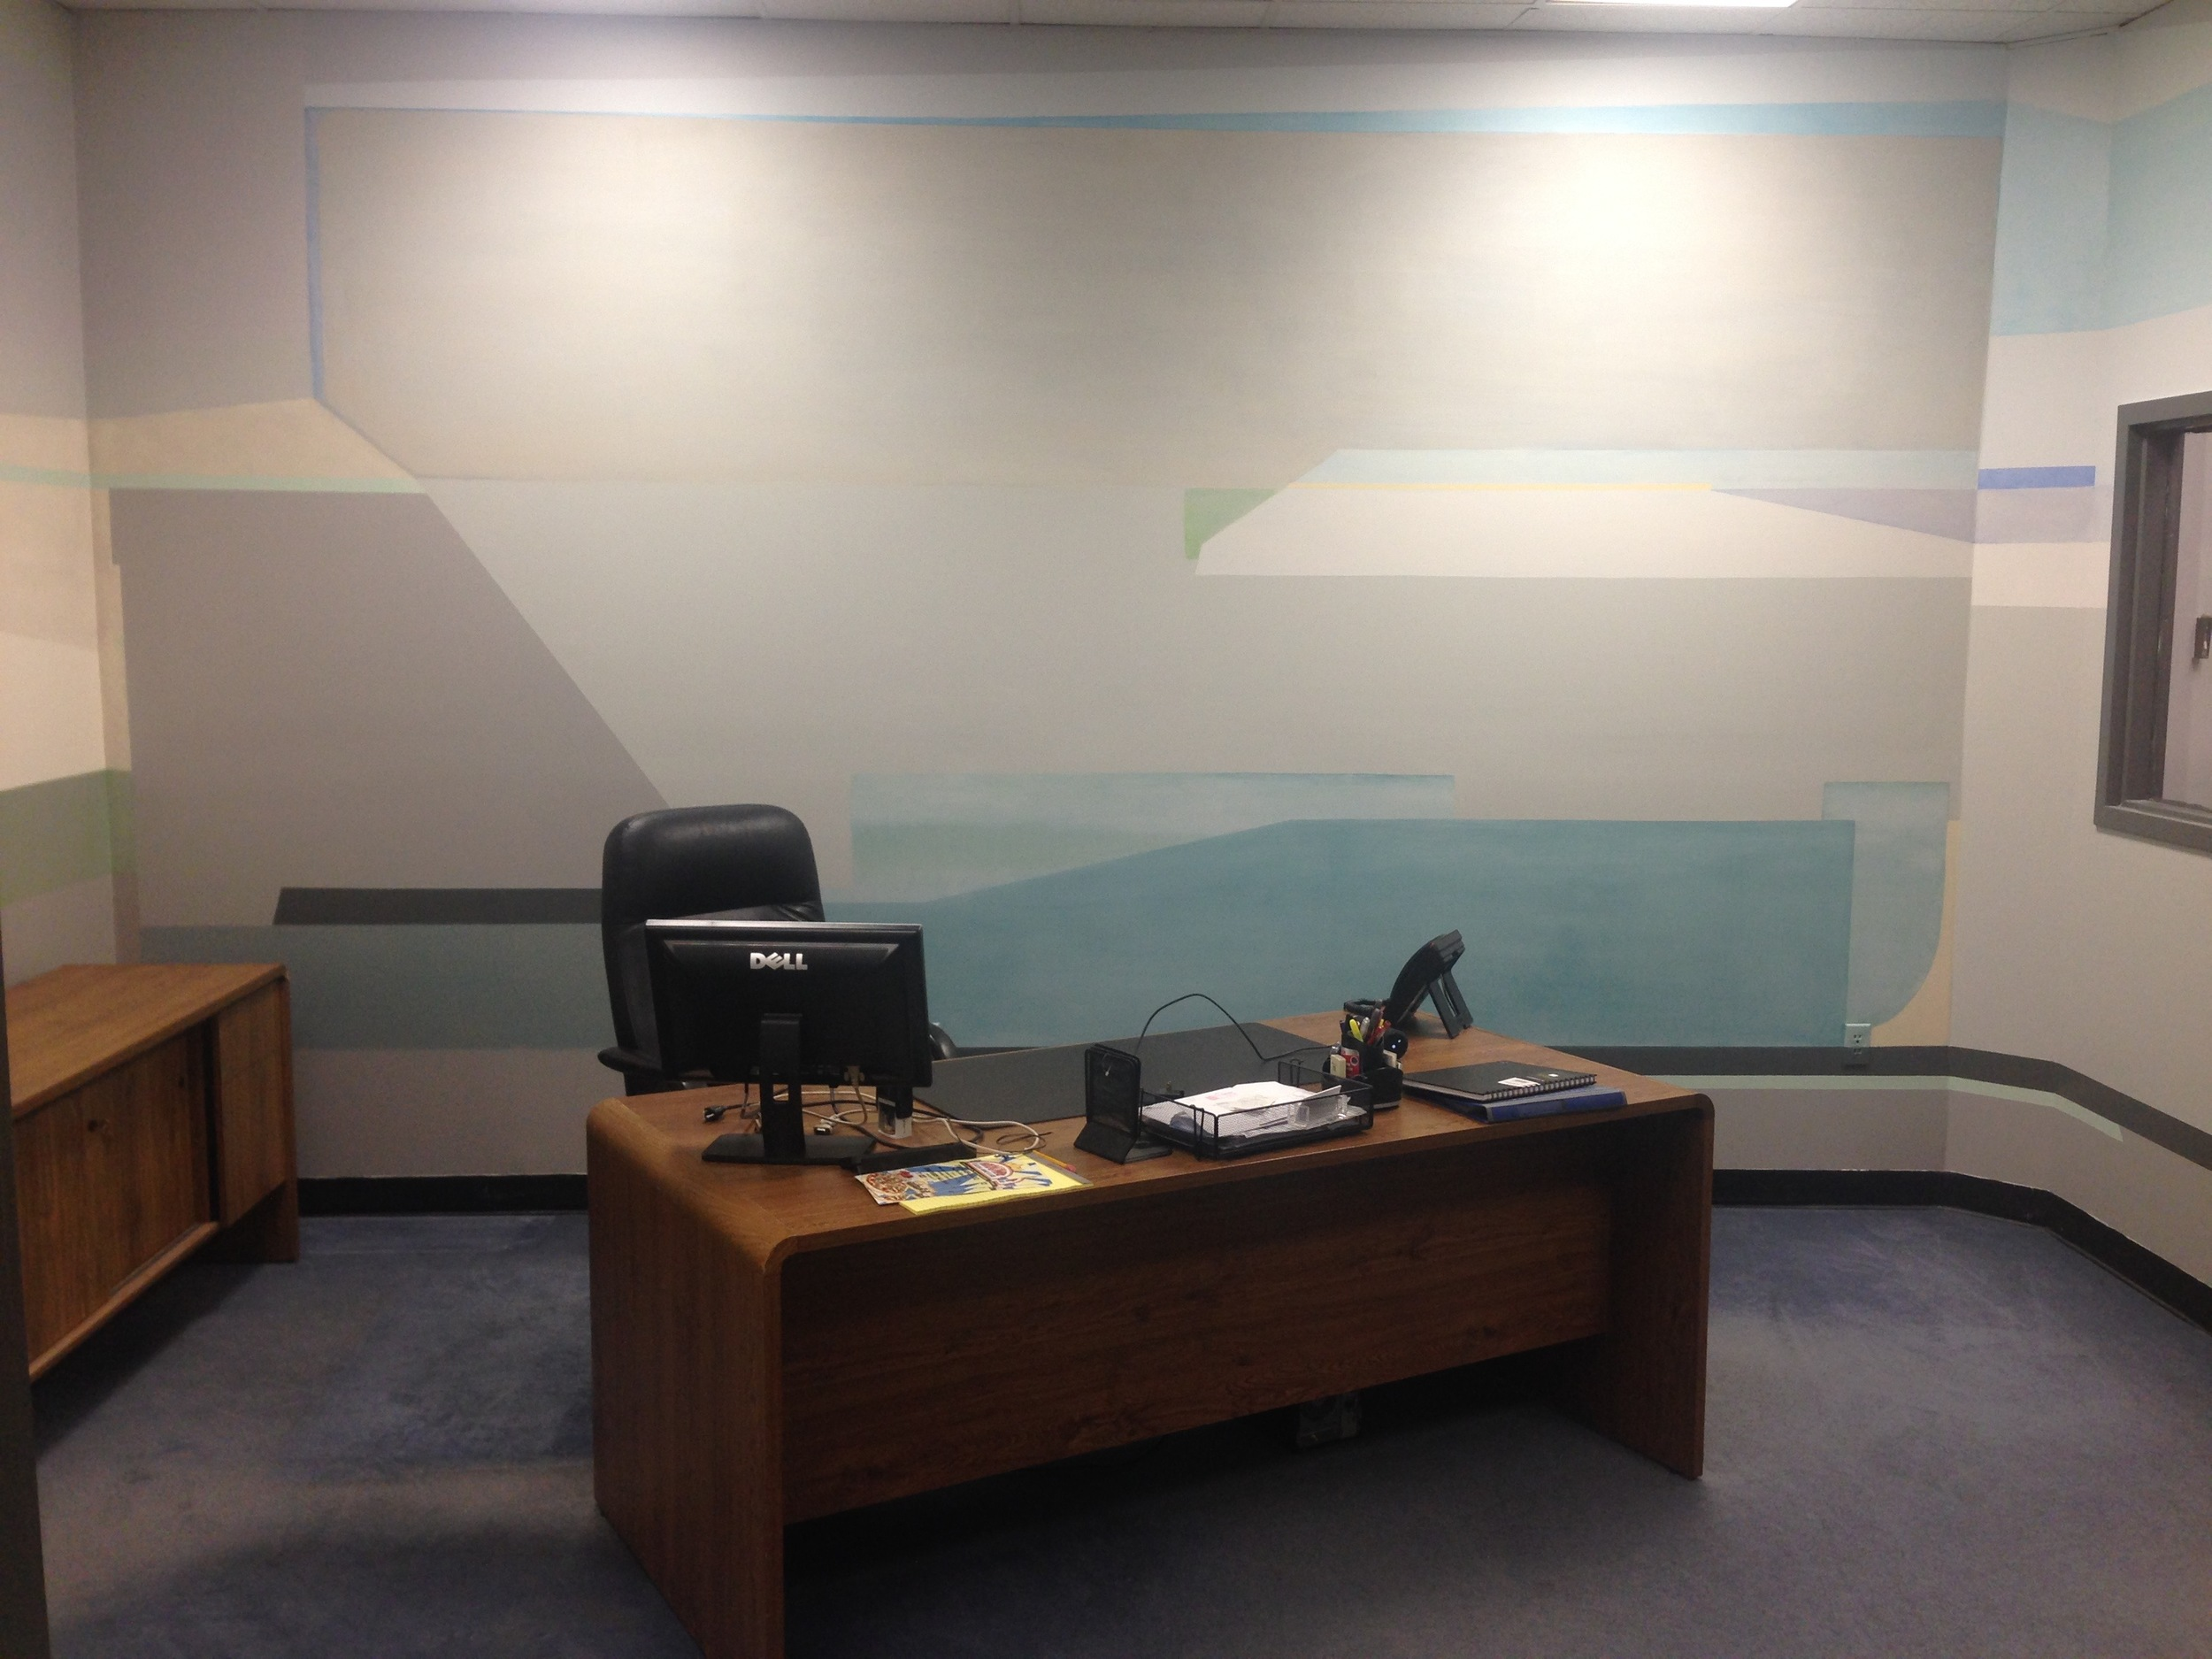 Contemporary abstract mural -another view